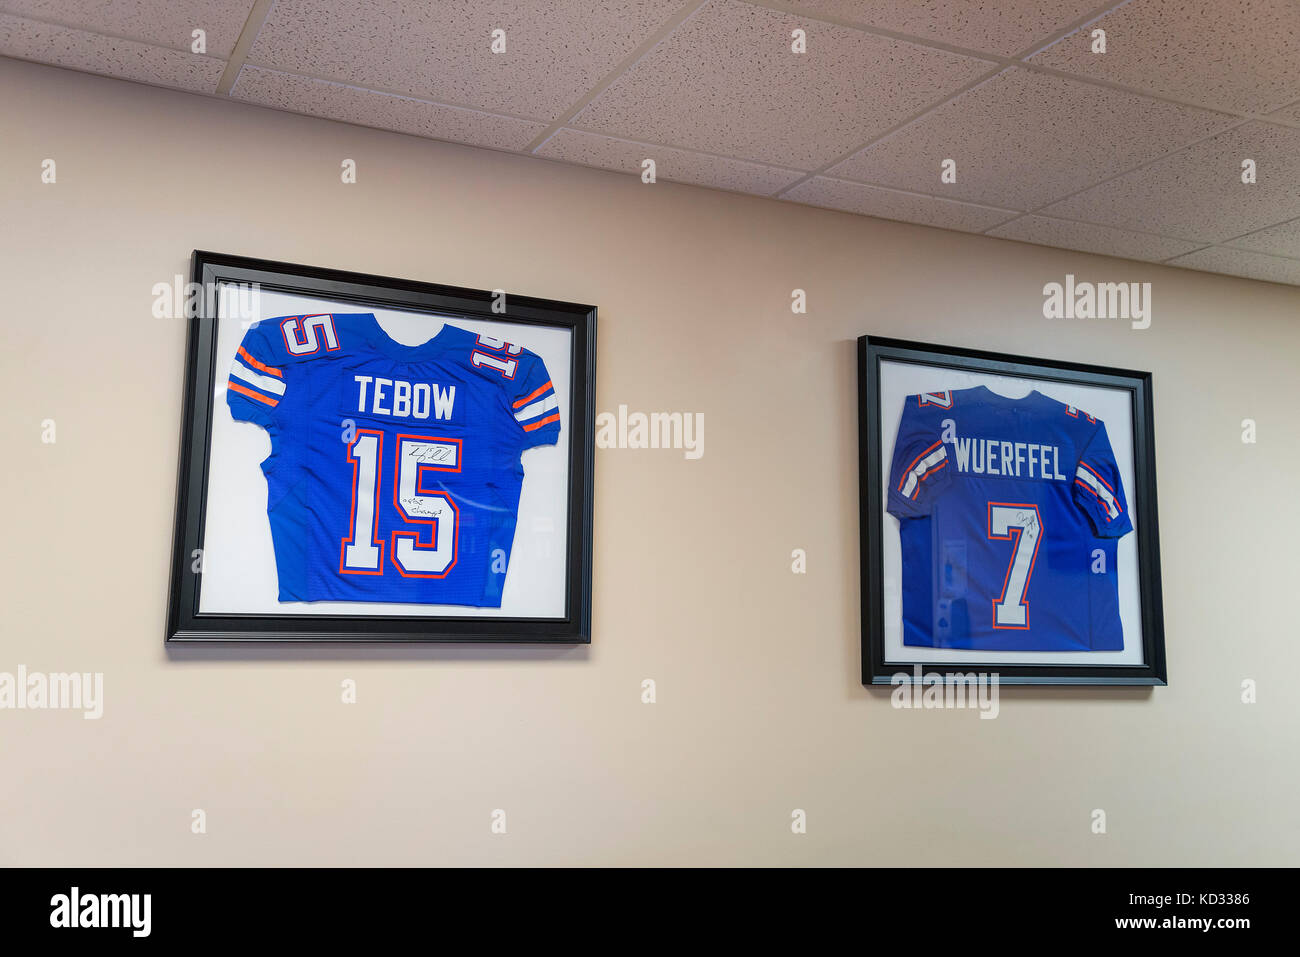 c07ef1187db Tim Tebow and Danny Wuerffel signed football jerseys on display in an  office. - Stock